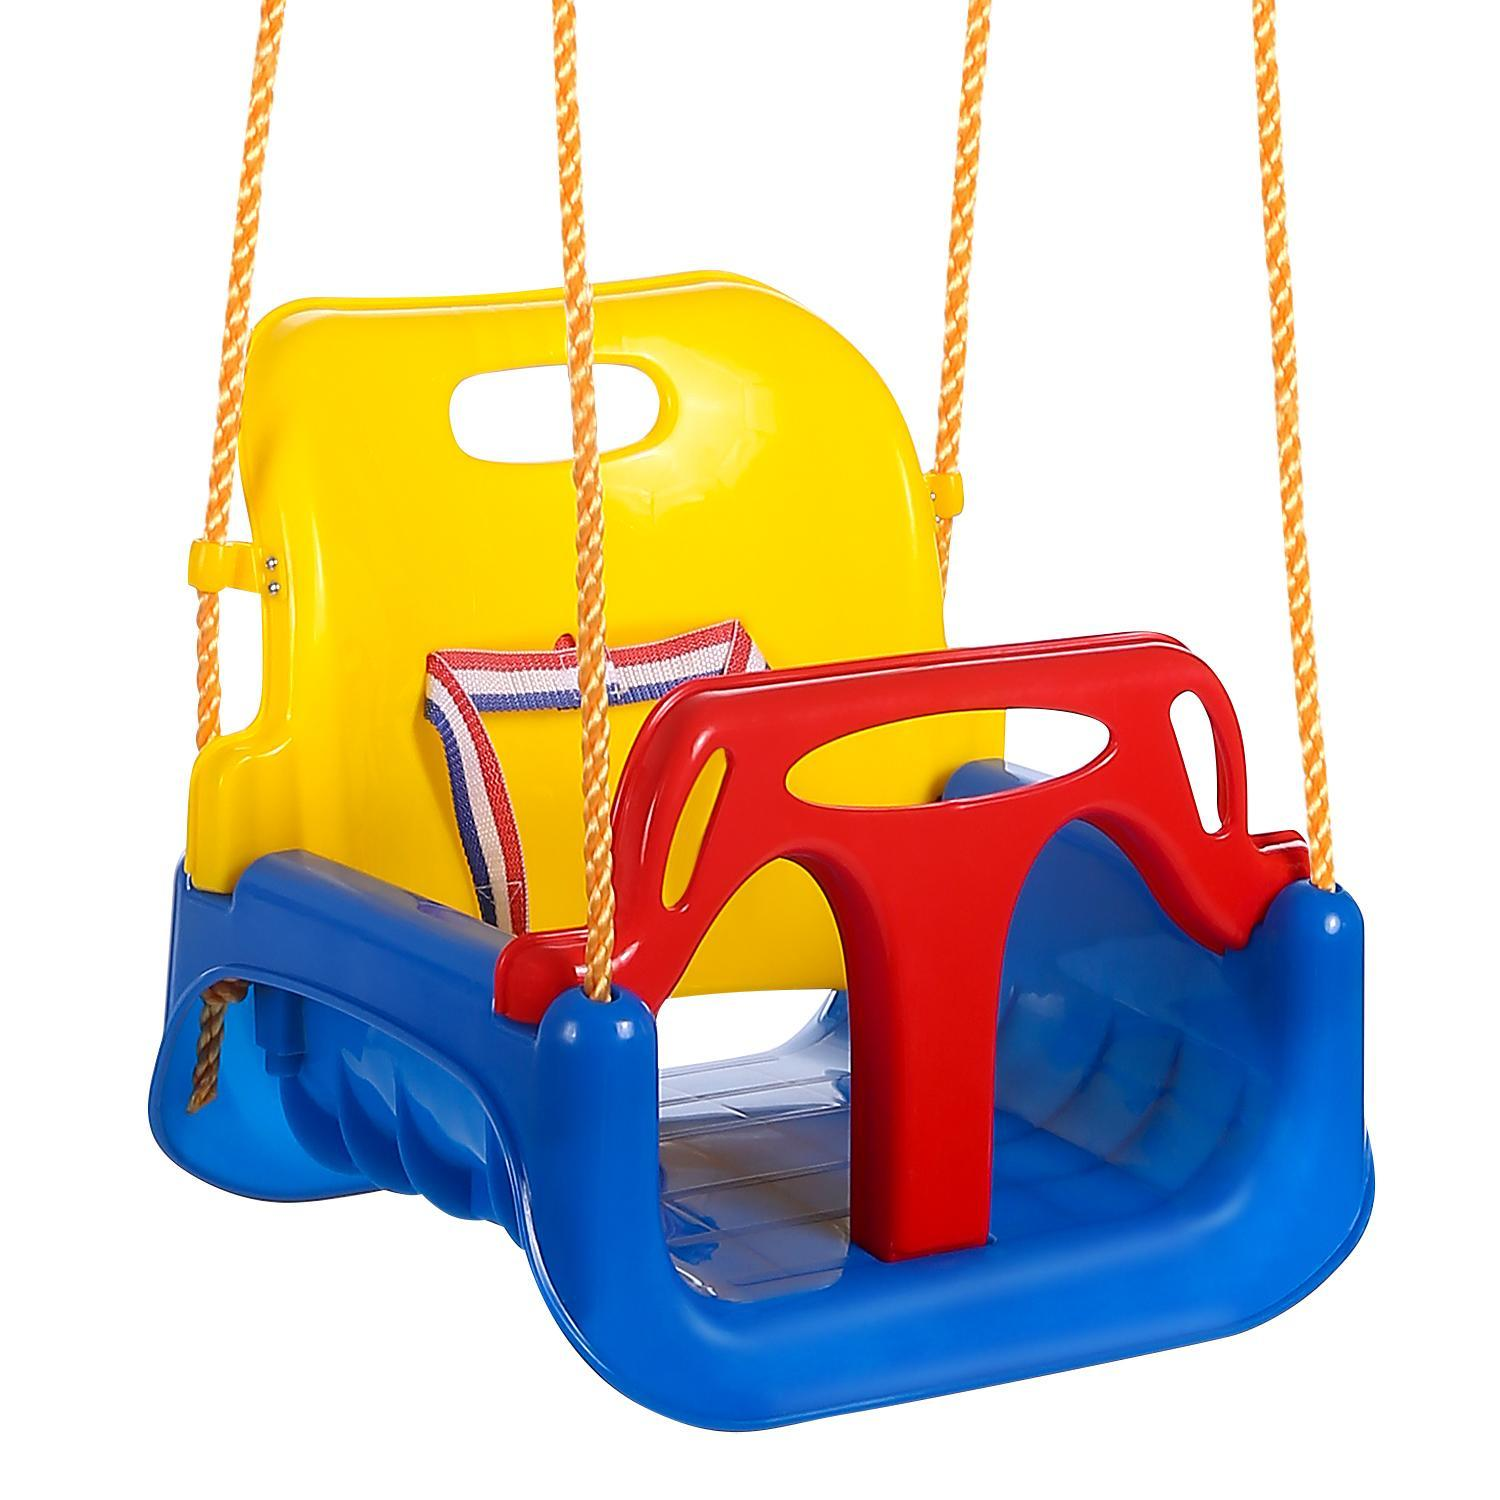 3-in-1 Baby Swing Seat Outdoor Playground Backyard Swing Set For Infant,Baby,Children With Nylon Rope